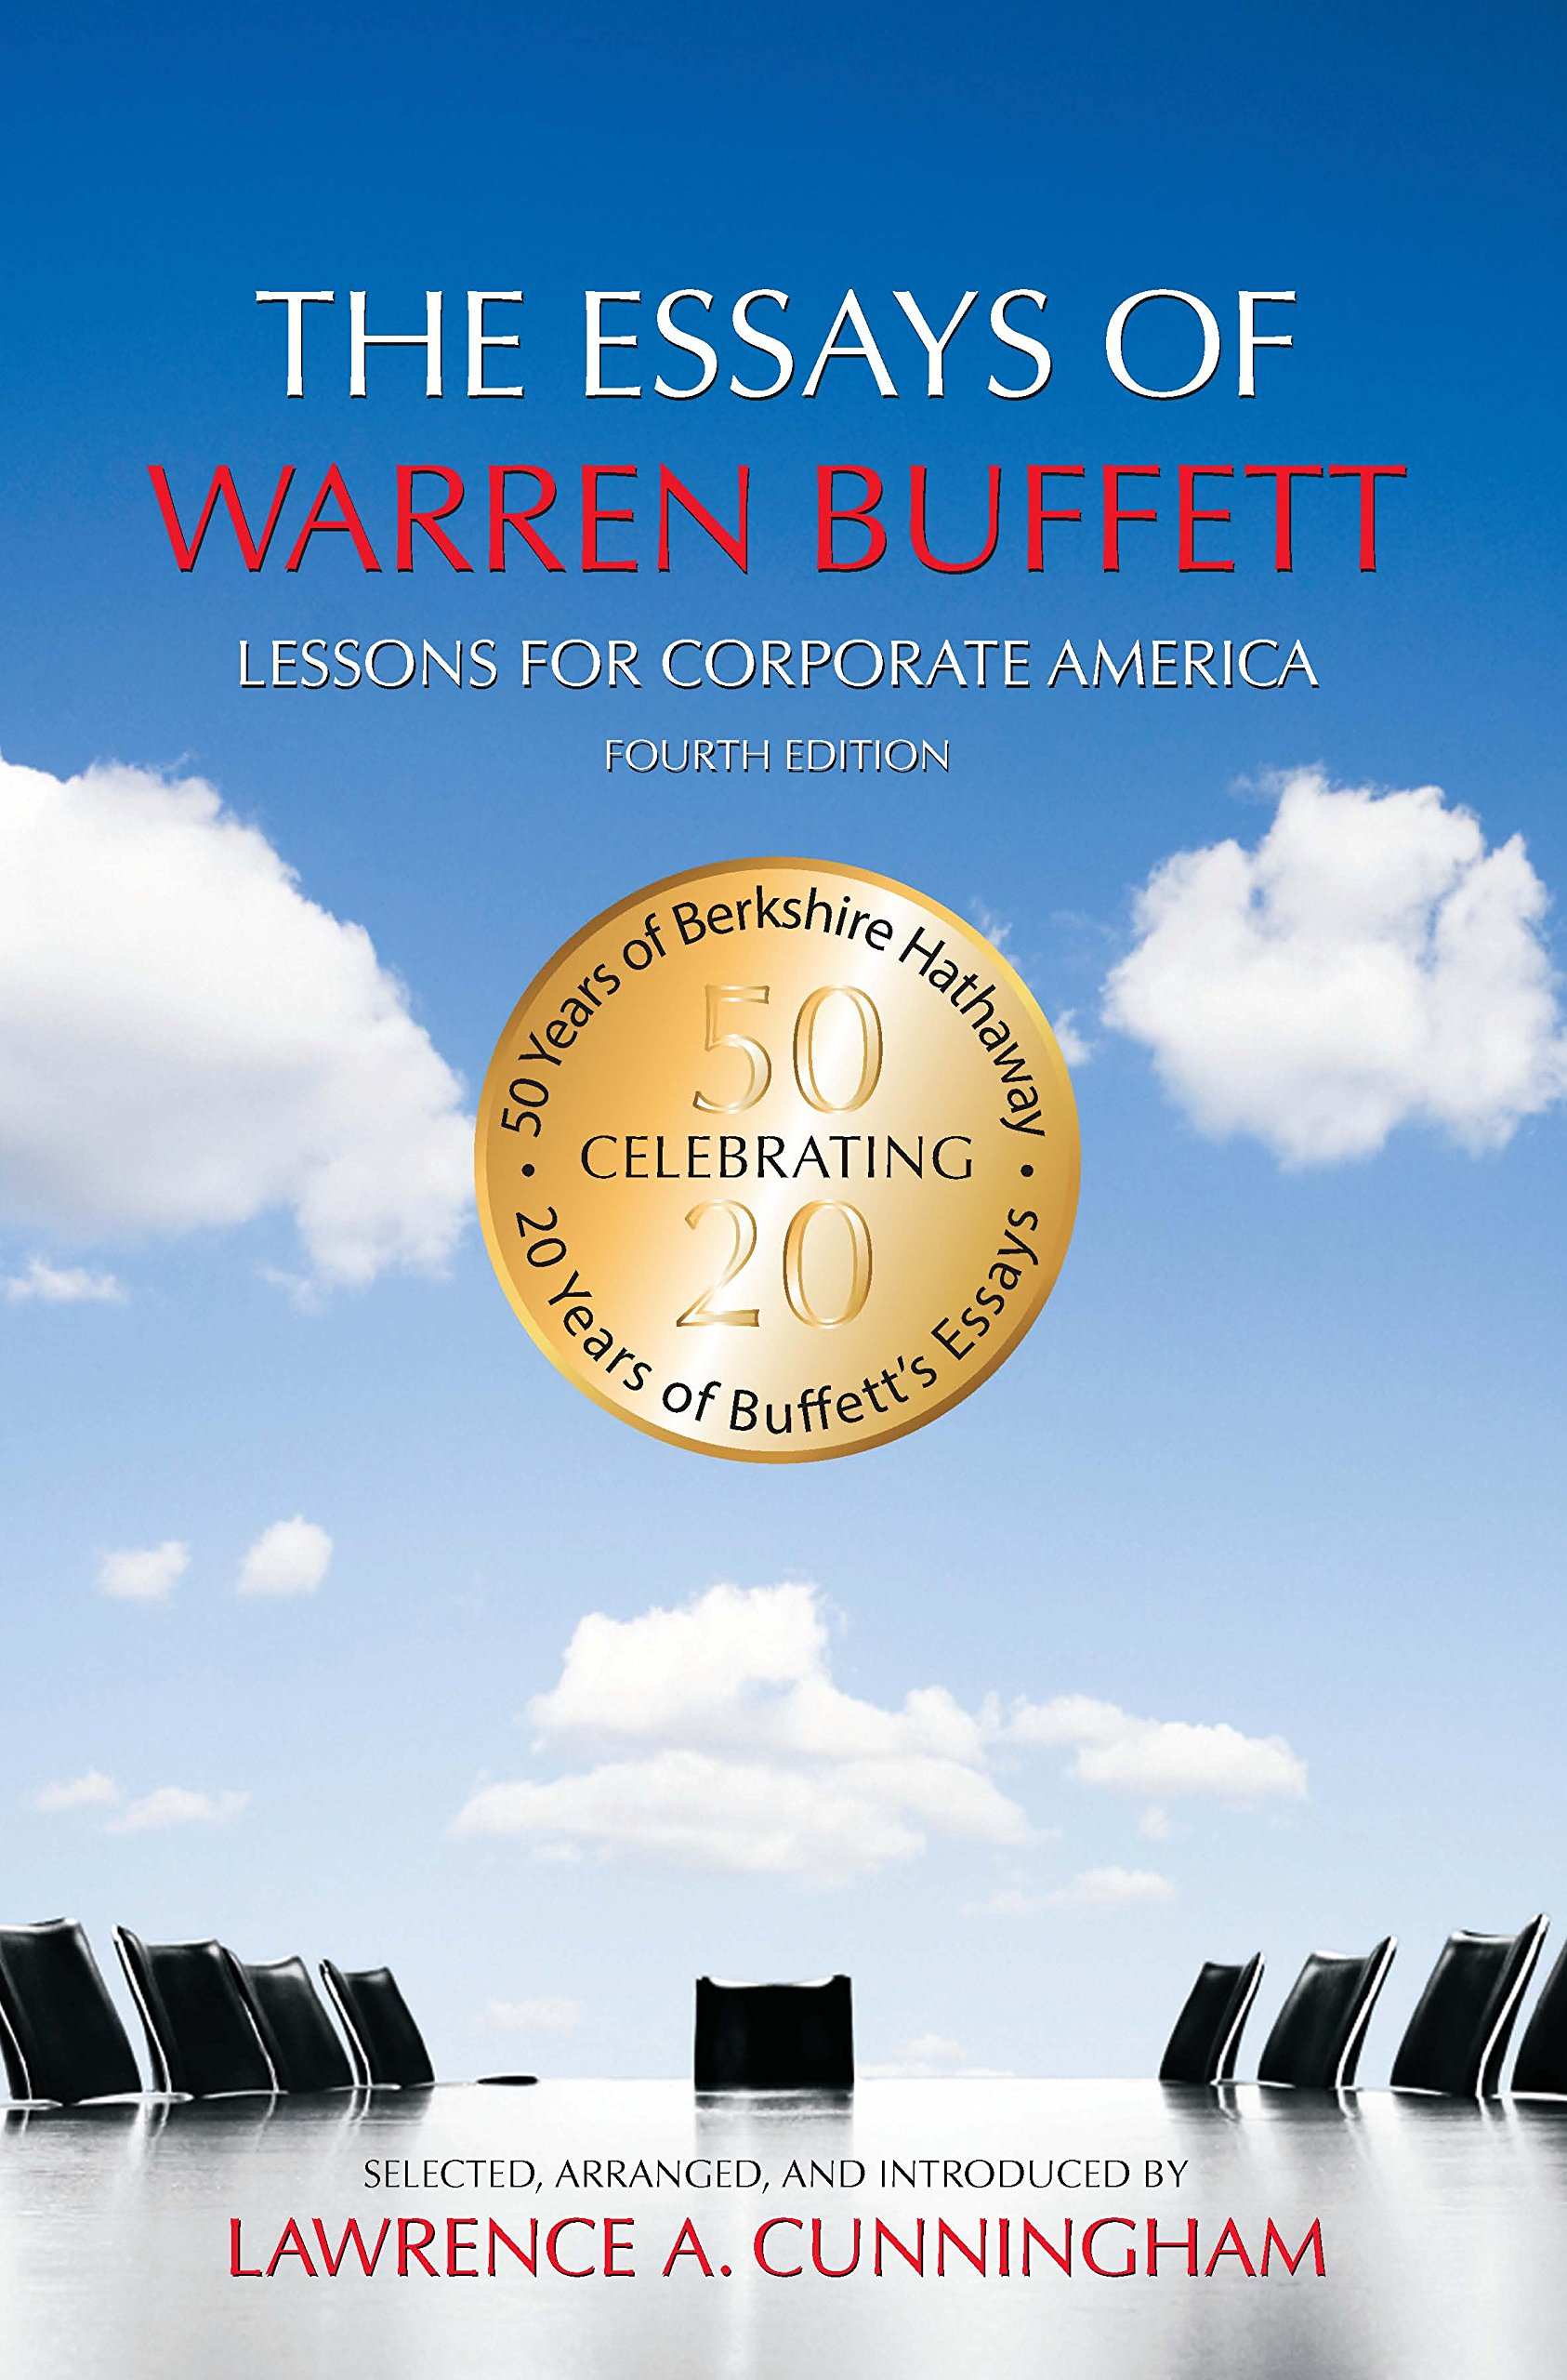 the essays of warren buffett lessons for corporate america the essays of warren buffett lessons for corporate america it warren e buffett lawrence a cunningham libri in altre lingue